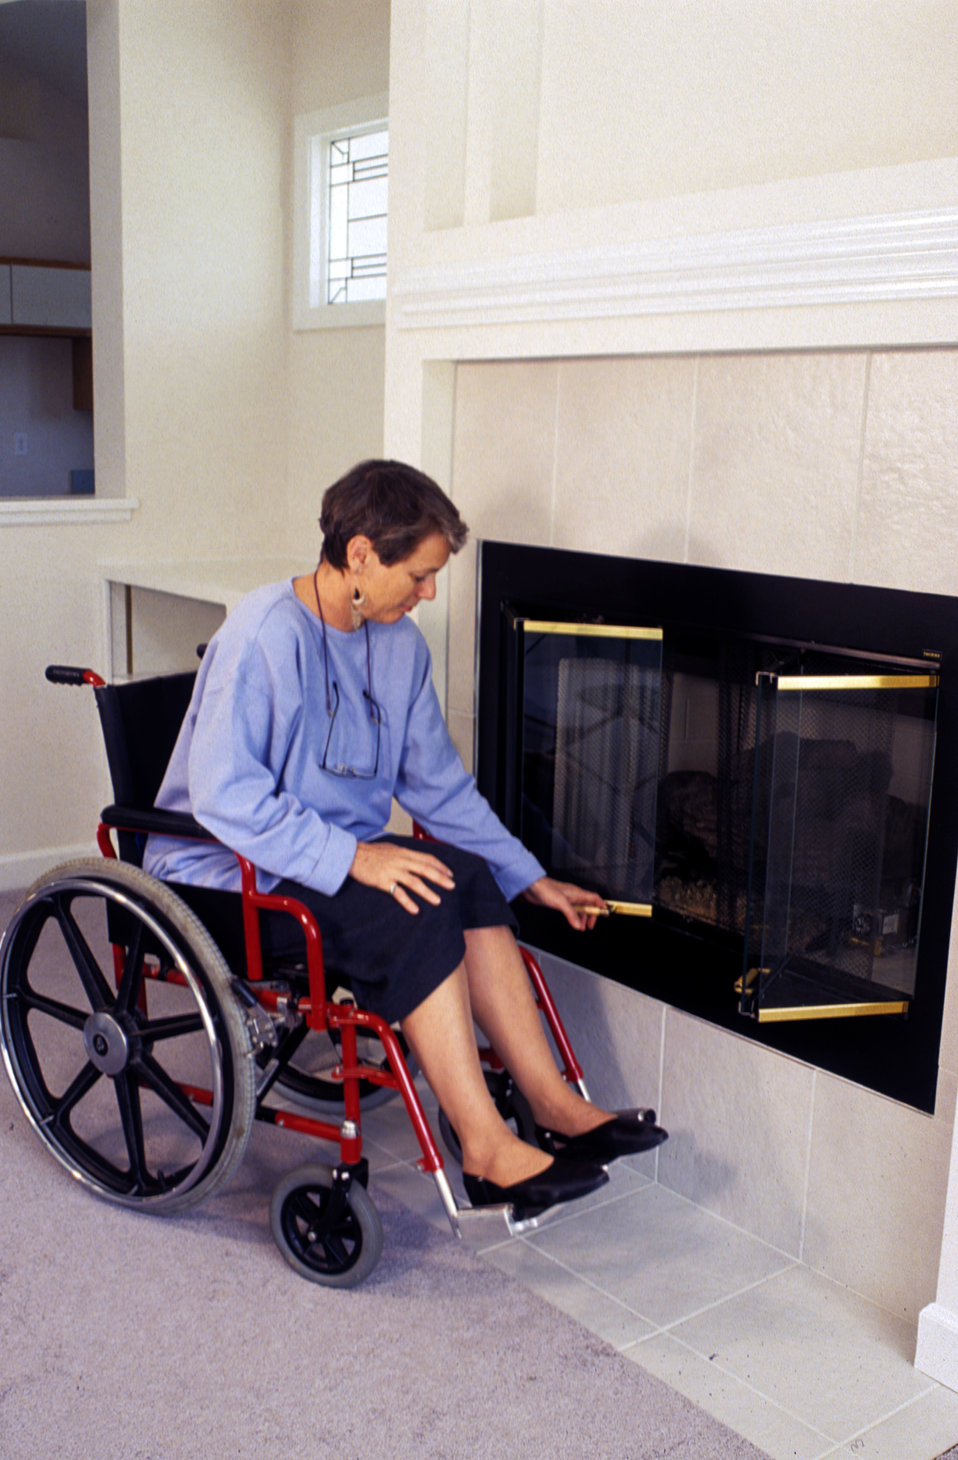 This 1994 image depicted a woman who was seated in a wheelchair in front of a raised hearth-type fireplace as she was opening the fireplace